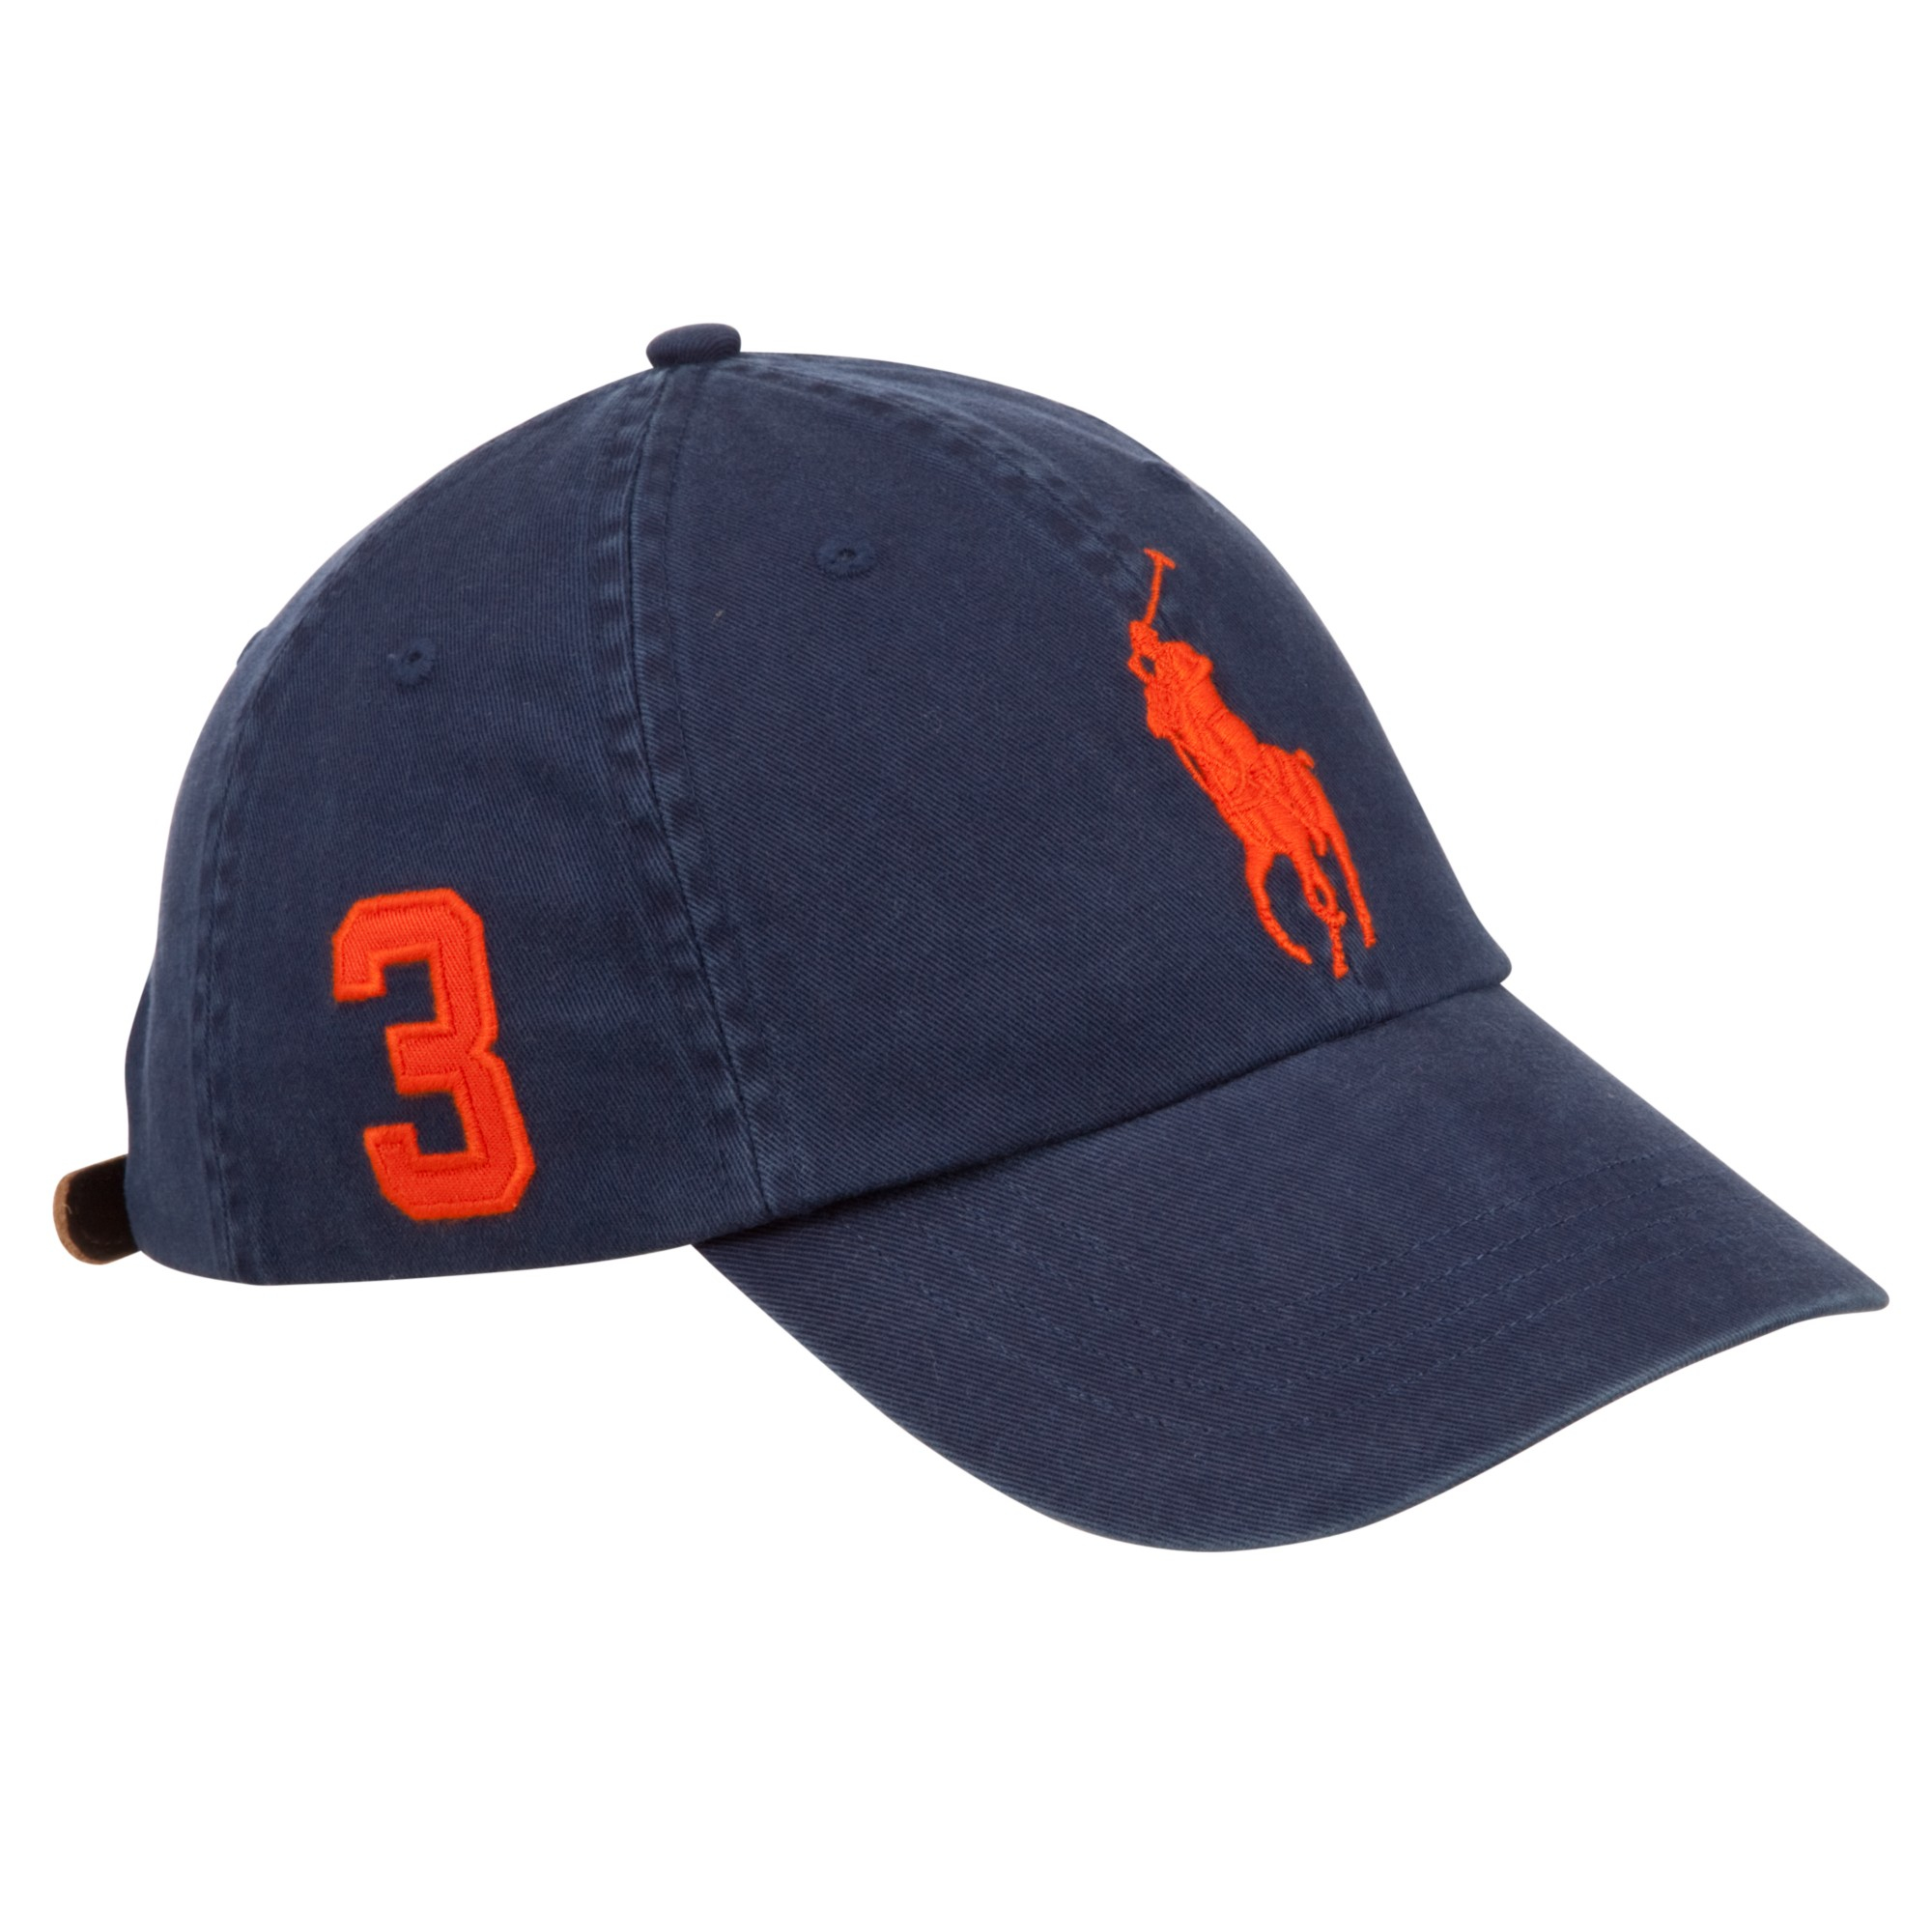 Pink Pony Polo Big Pony Chino Baseball Cap in Blue for Men - Lyst 2d7fe17e34b